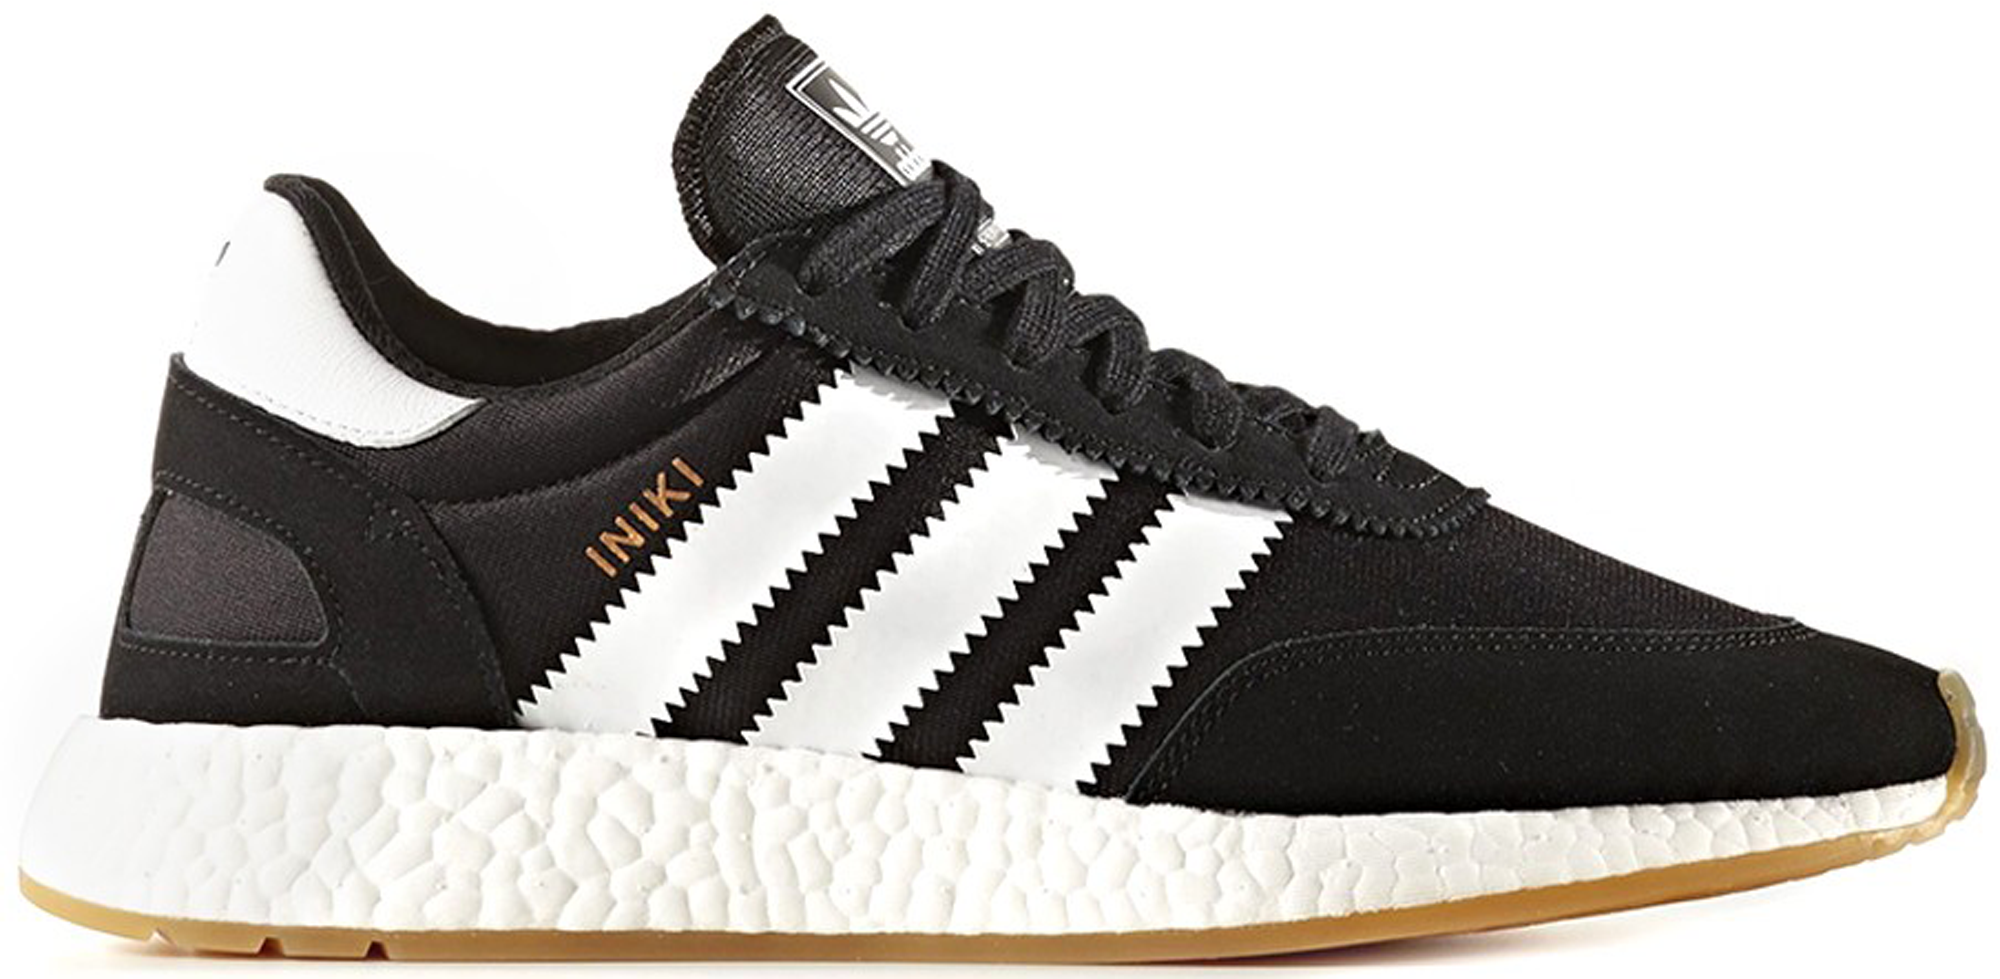 adidas Iniki Runner Black White Gum